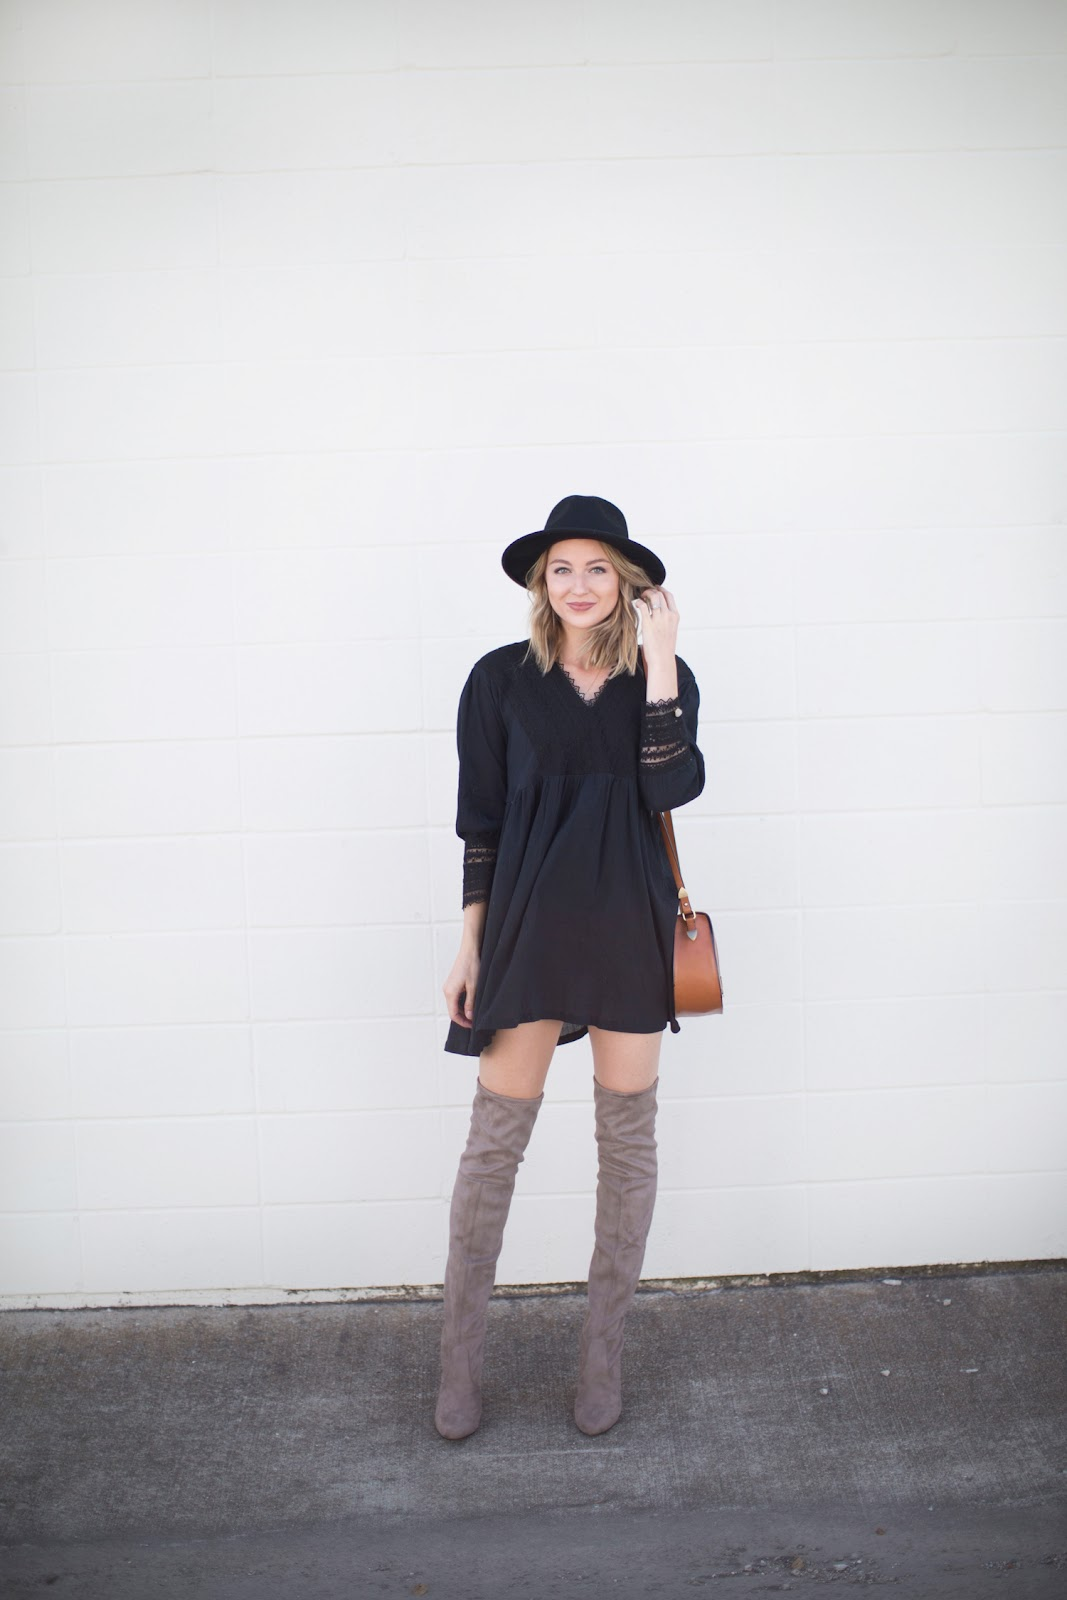 Mini dress + tall boots